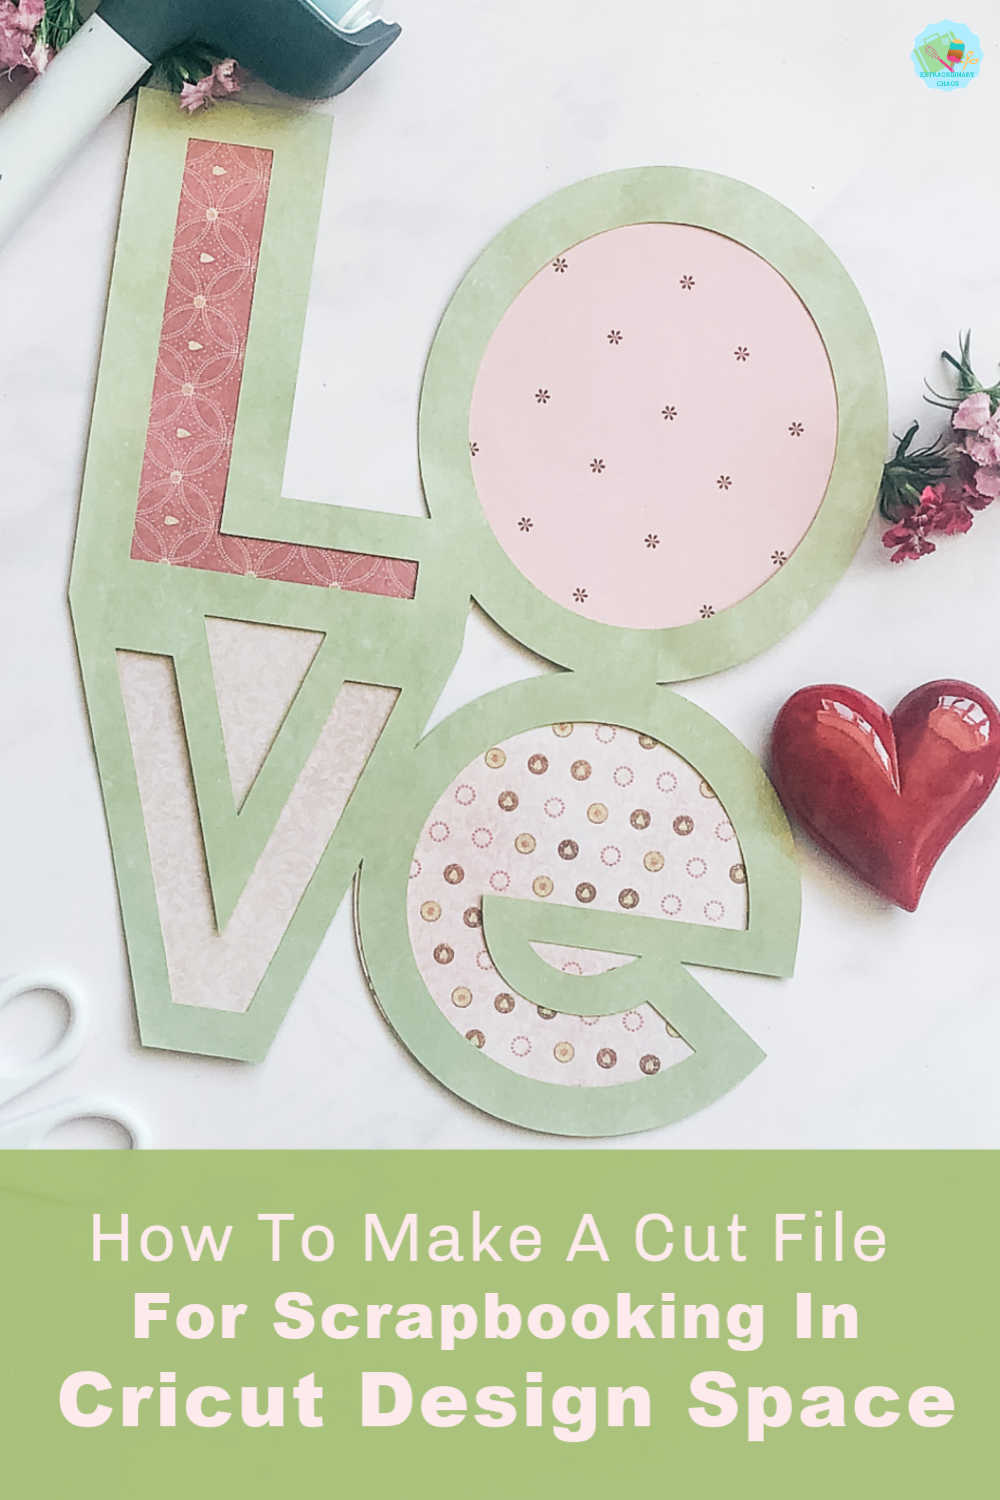 How to make a digital word template cut file for scrapbooking with Cricut